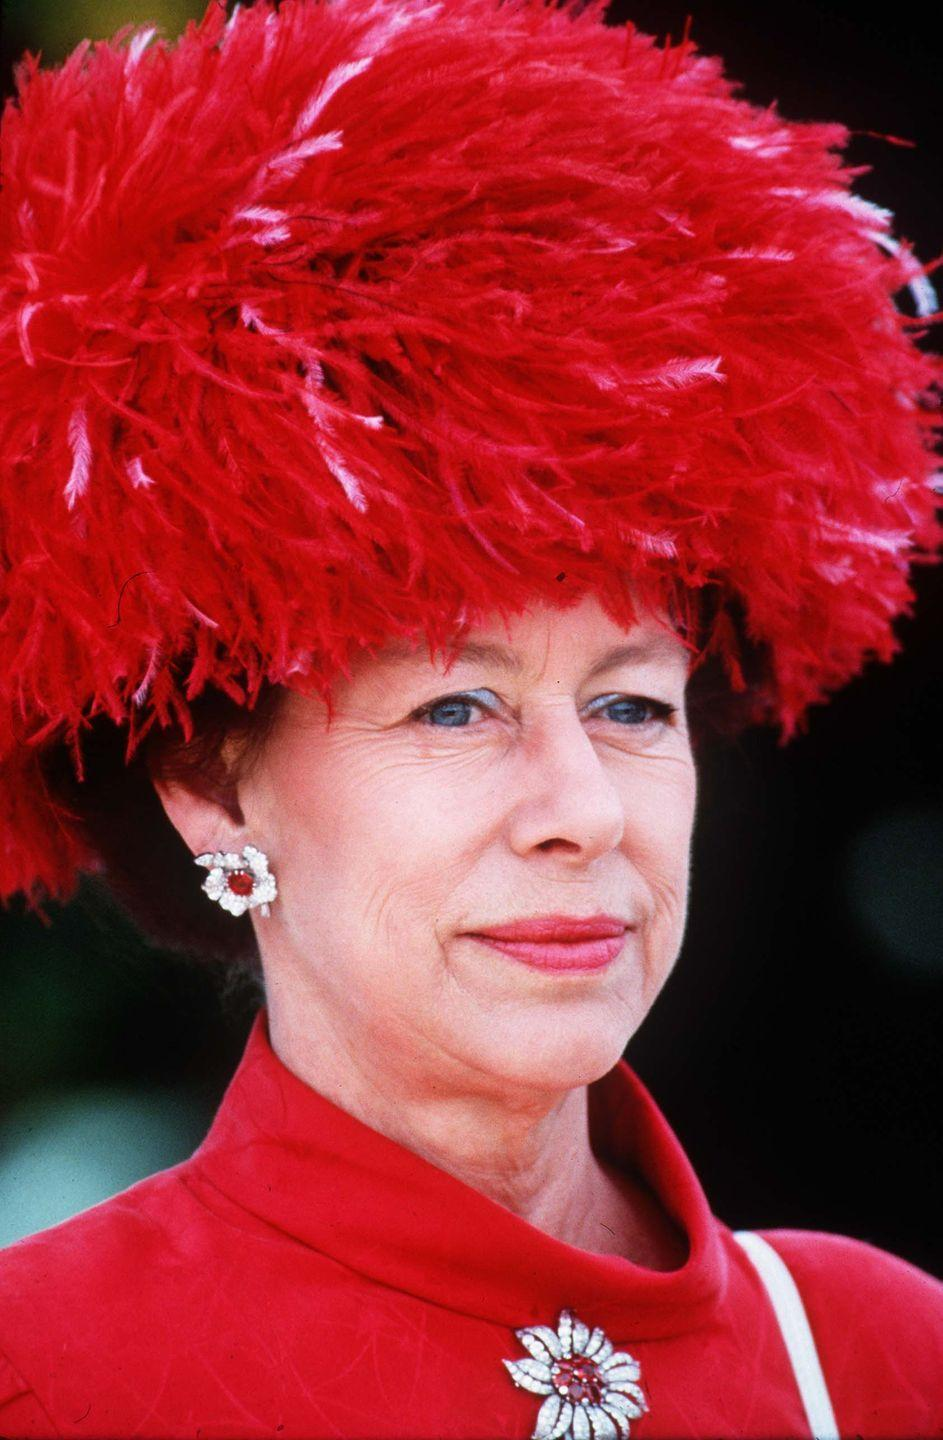 <p>While attending the Royal Ascot, Princess Margaret looked fabulous in head-to-toe red. </p>